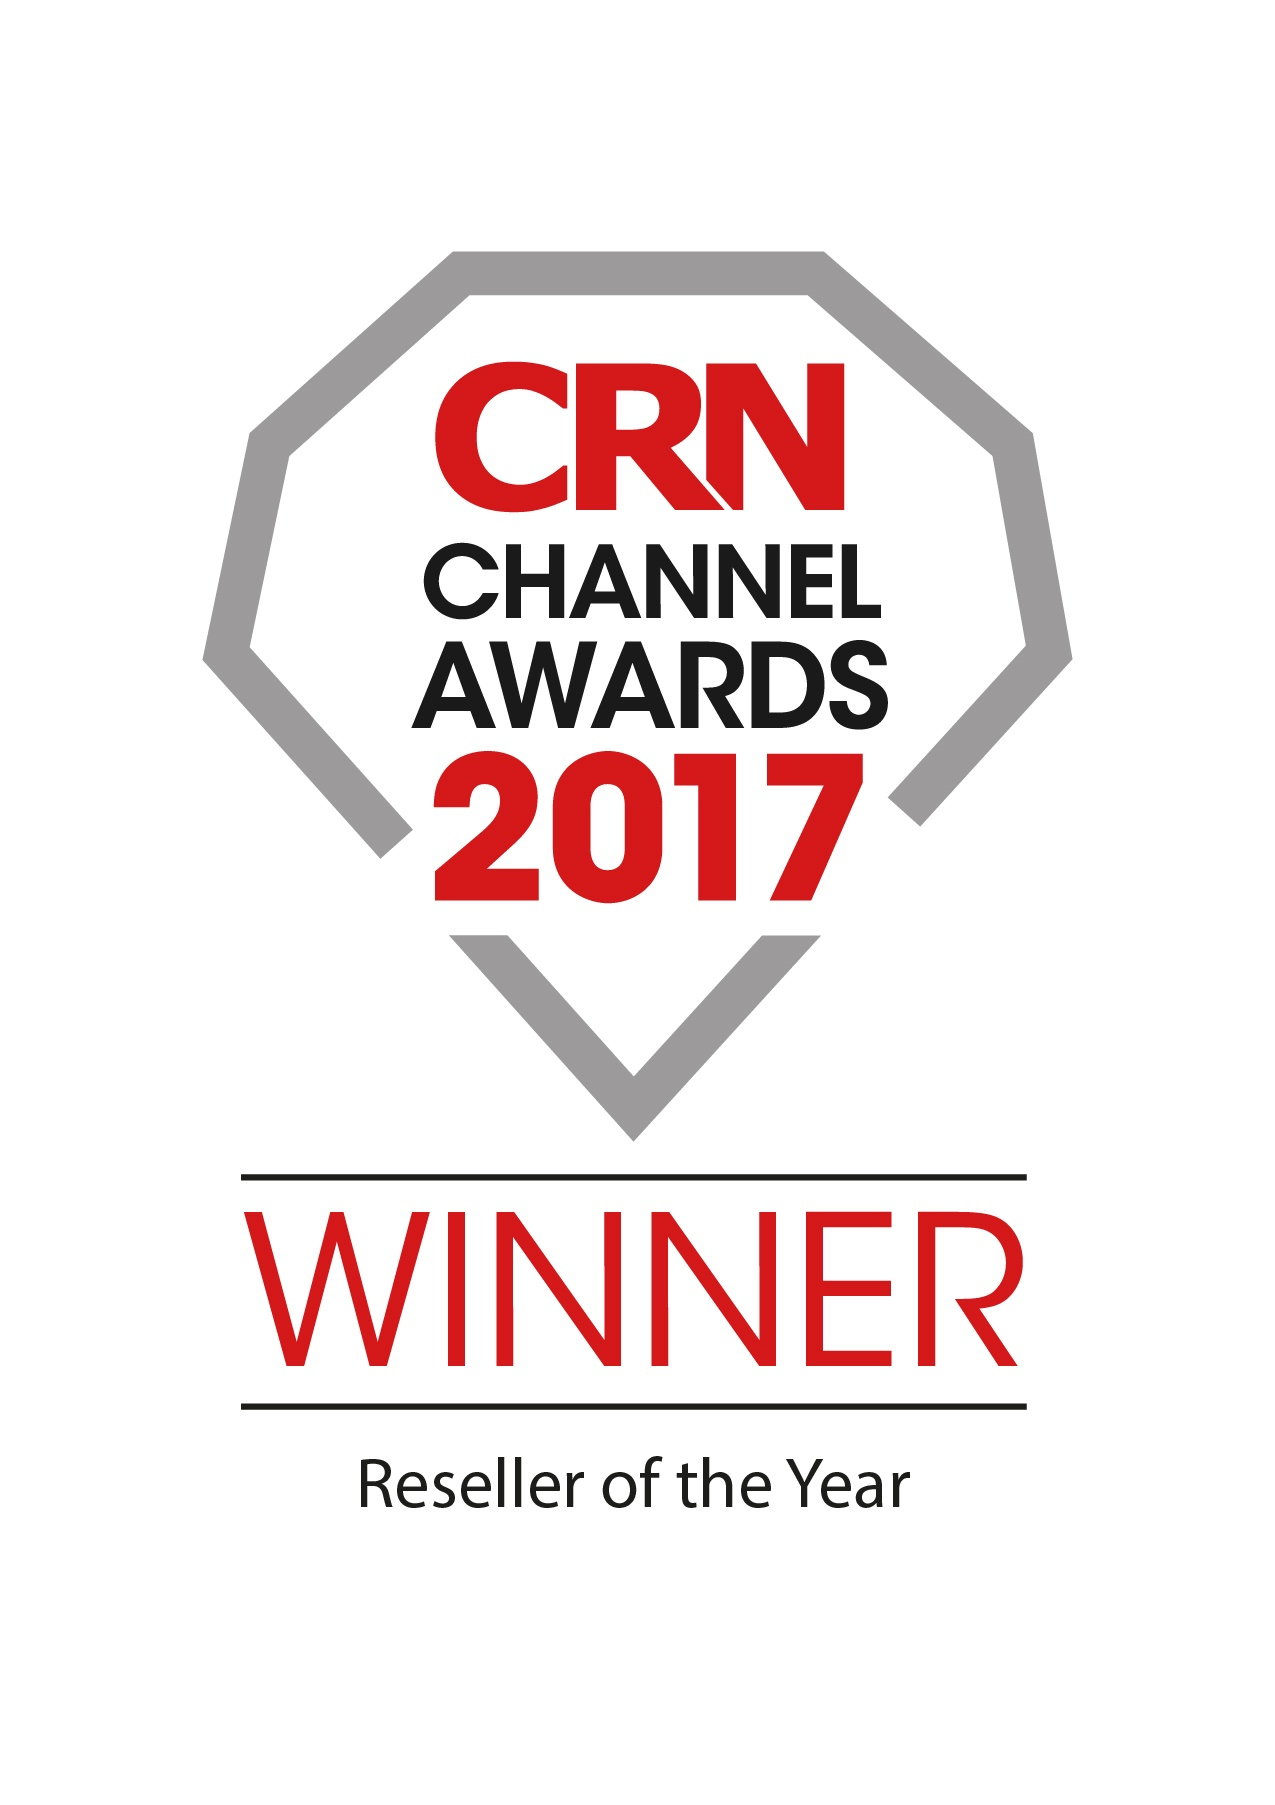 CRNCA17-LOGO-WIN_Reseller_of_the_Year.jpg